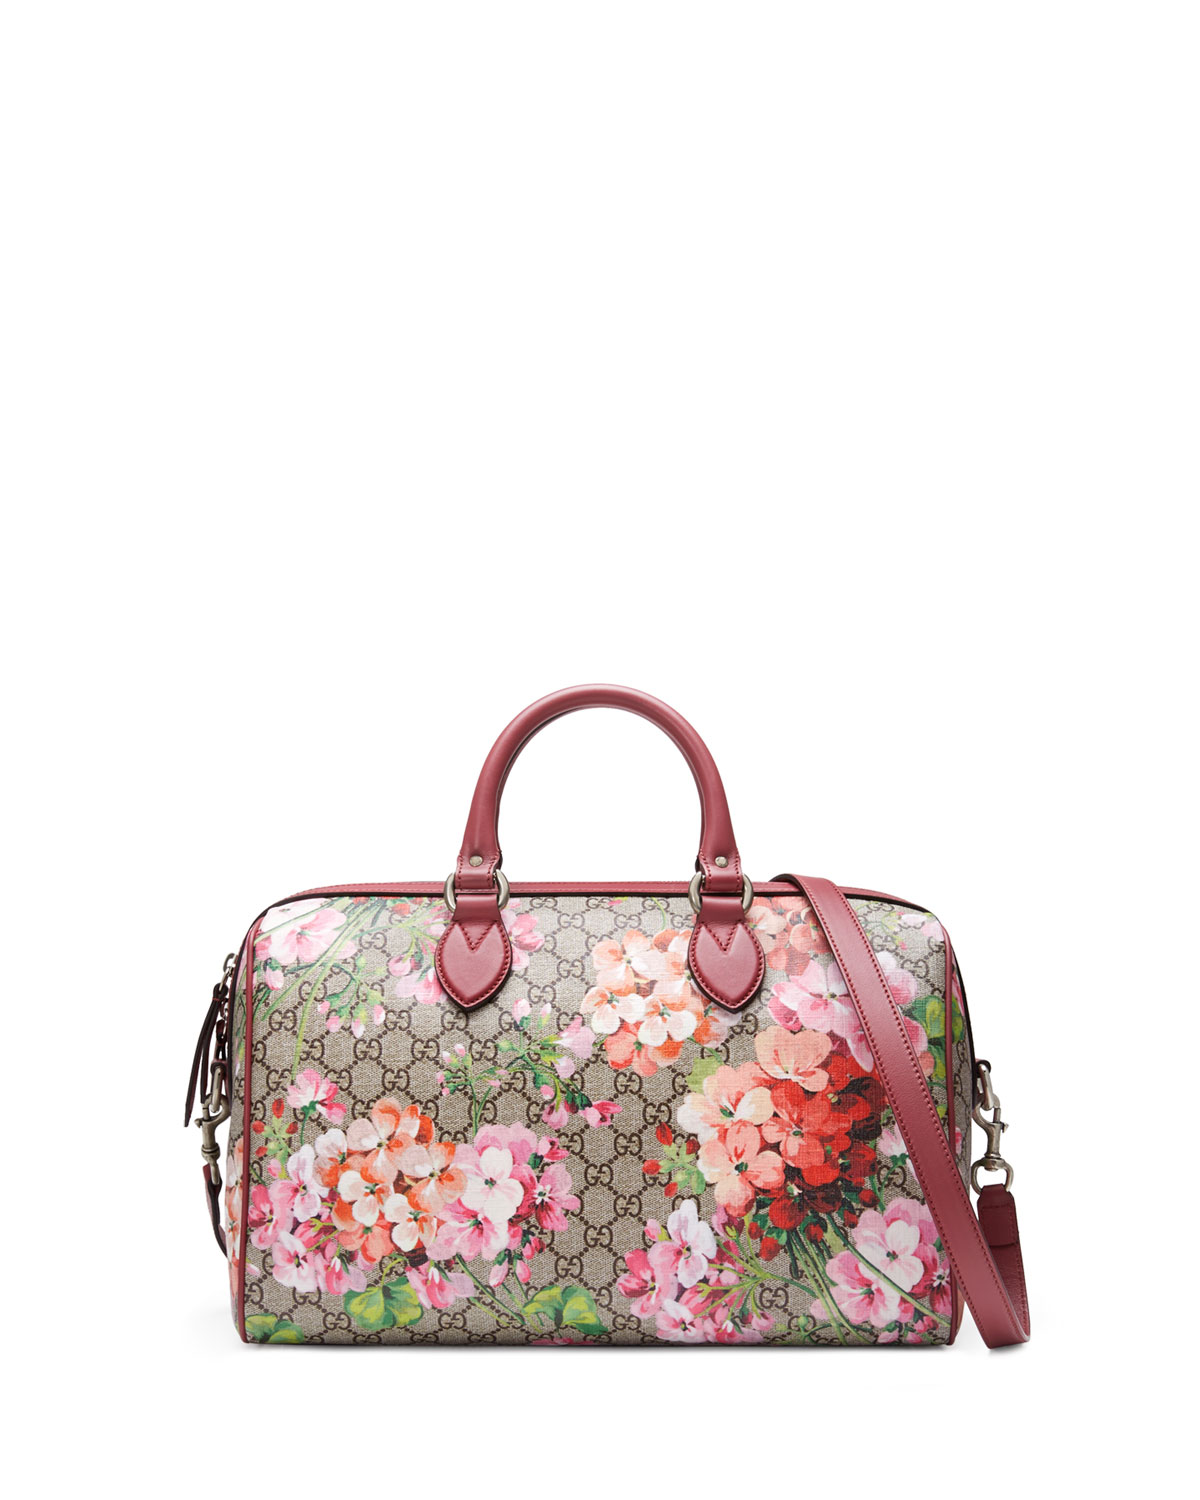 ff11051a1d56 Gucci Blooms GG Supreme Small Top-Handle Bag, Multi Rose | Neiman Marcus